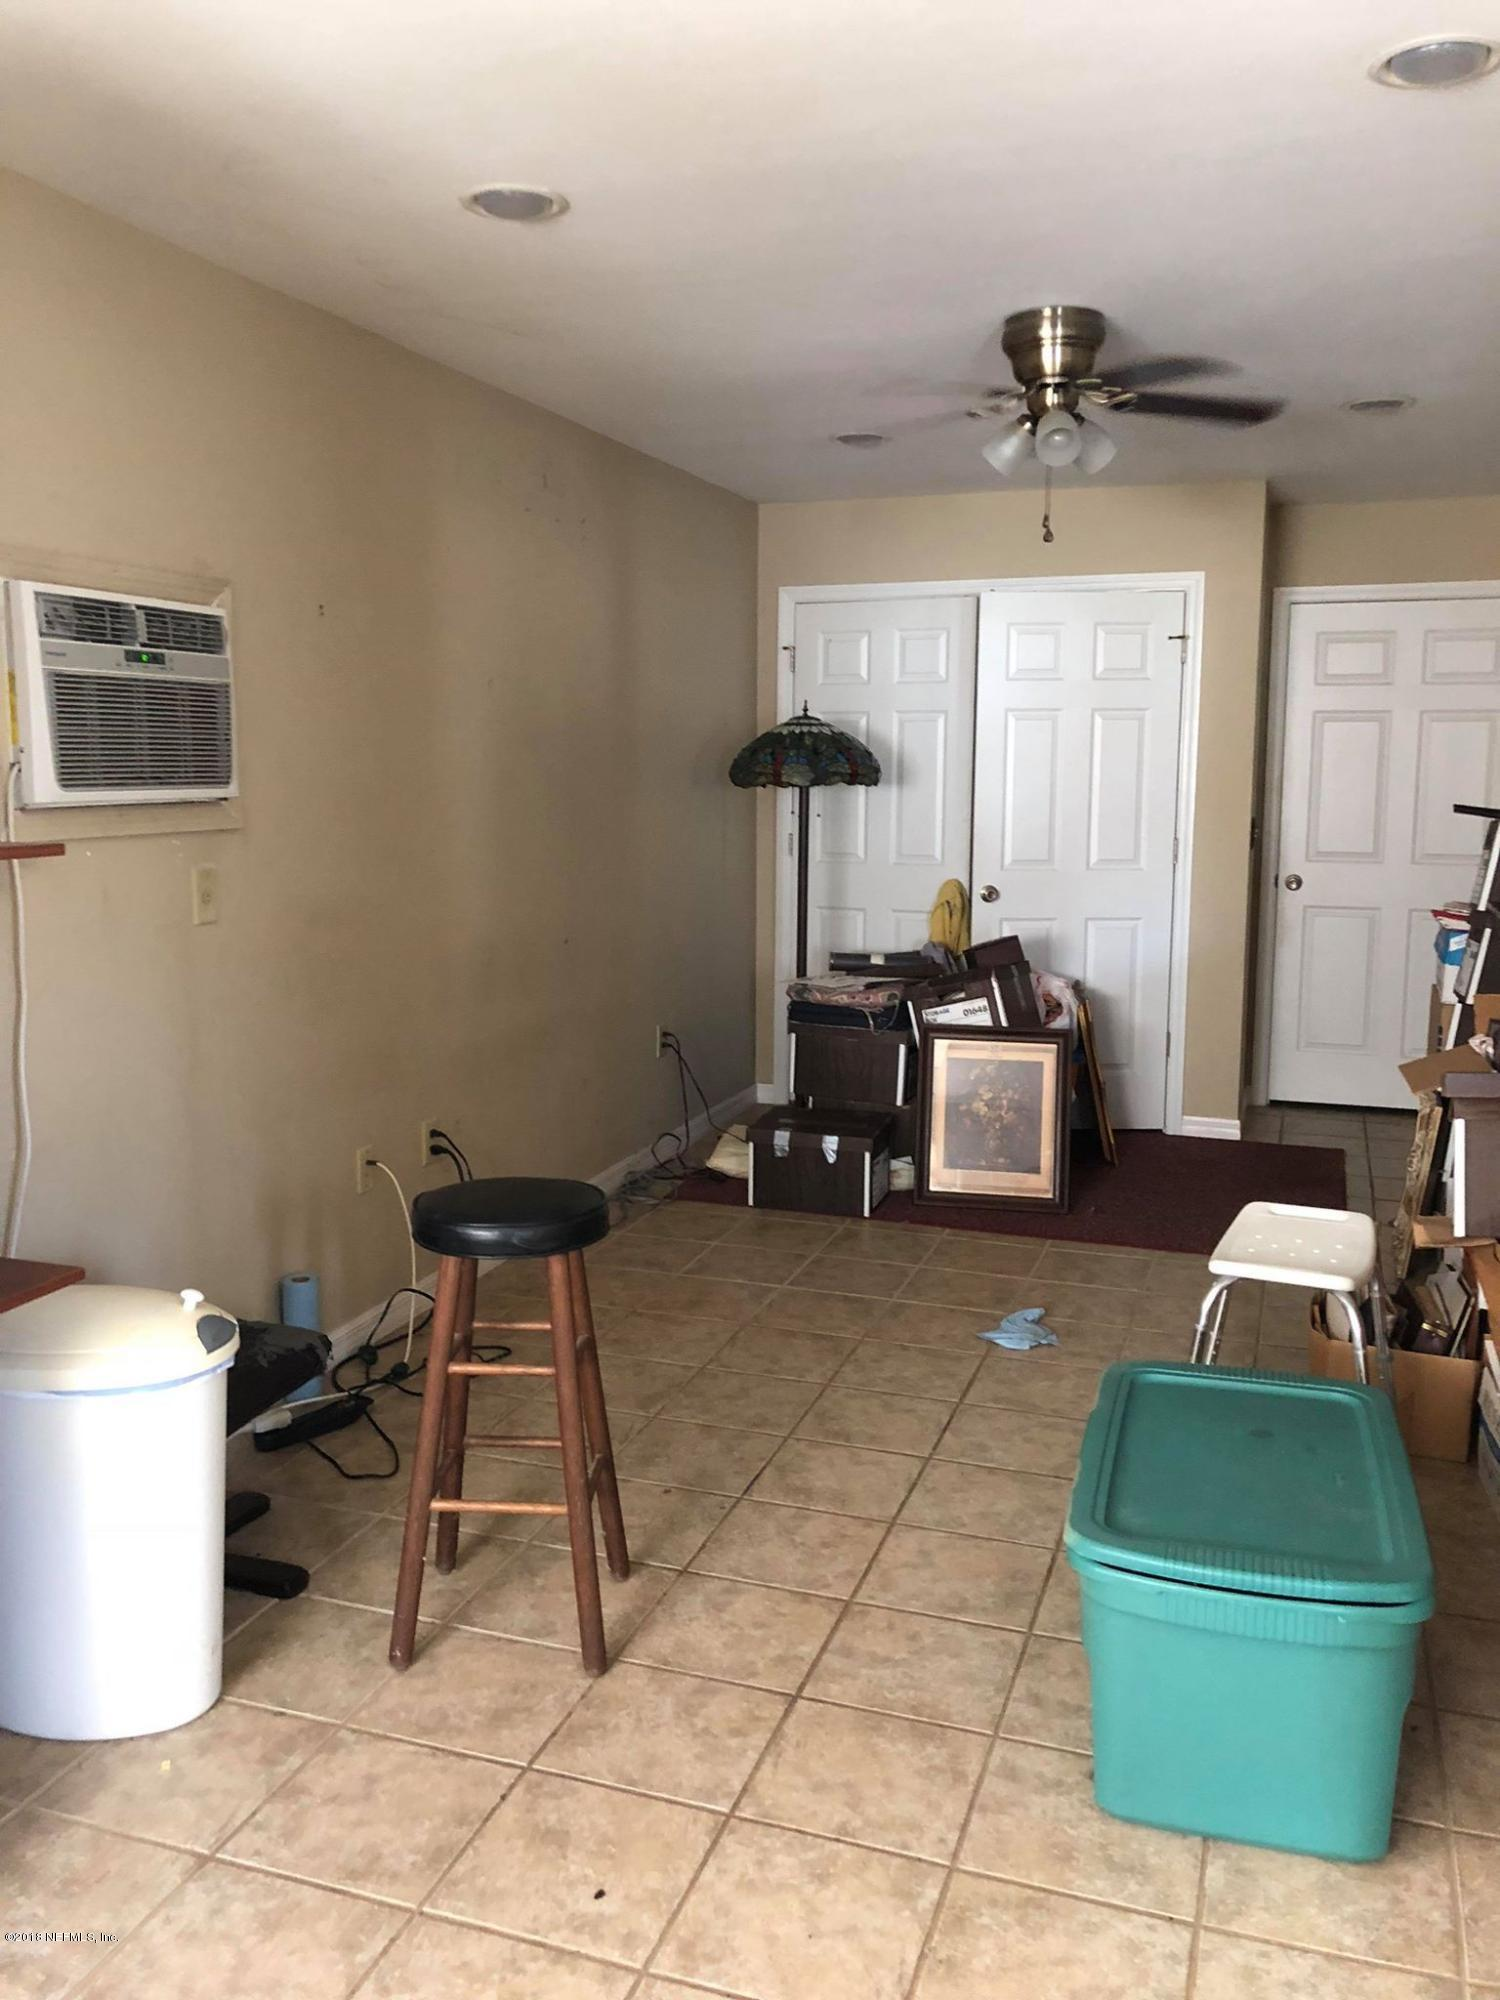 115 CHALLENGER, LAKE CITY, FLORIDA 32025, 1 Bedroom Bedrooms, ,1 BathroomBathrooms,Residential - single family,For sale,CHALLENGER,959386